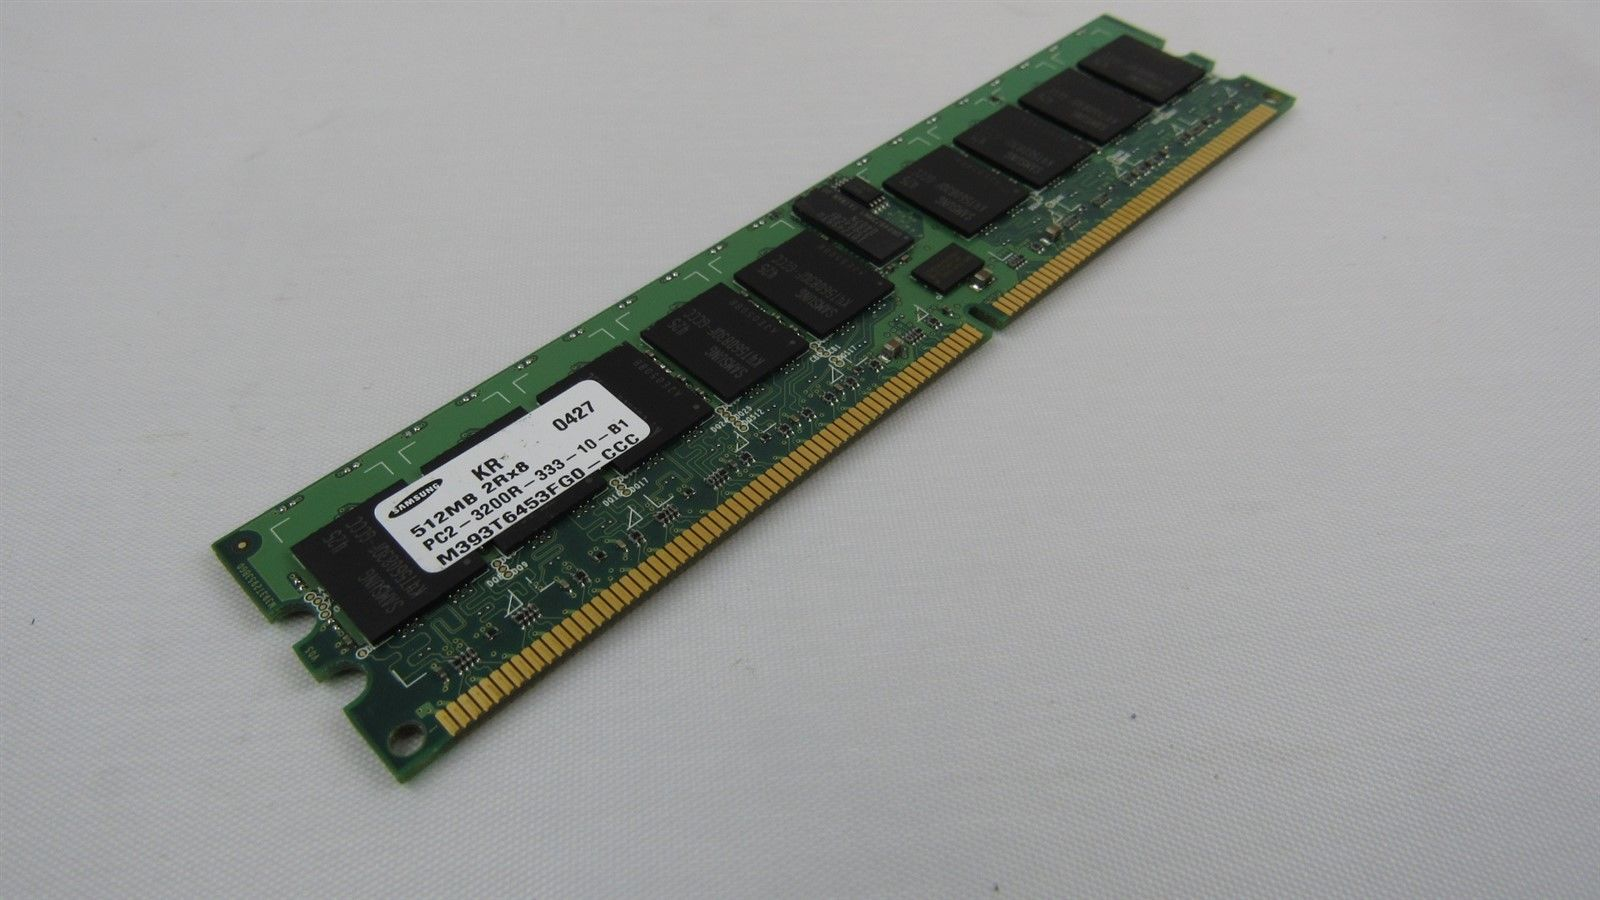 Dell 512MB PC2-5300 DDR2-667MHz non-ECC CL5 240-Pin DIMM Memory H2084 0H2084